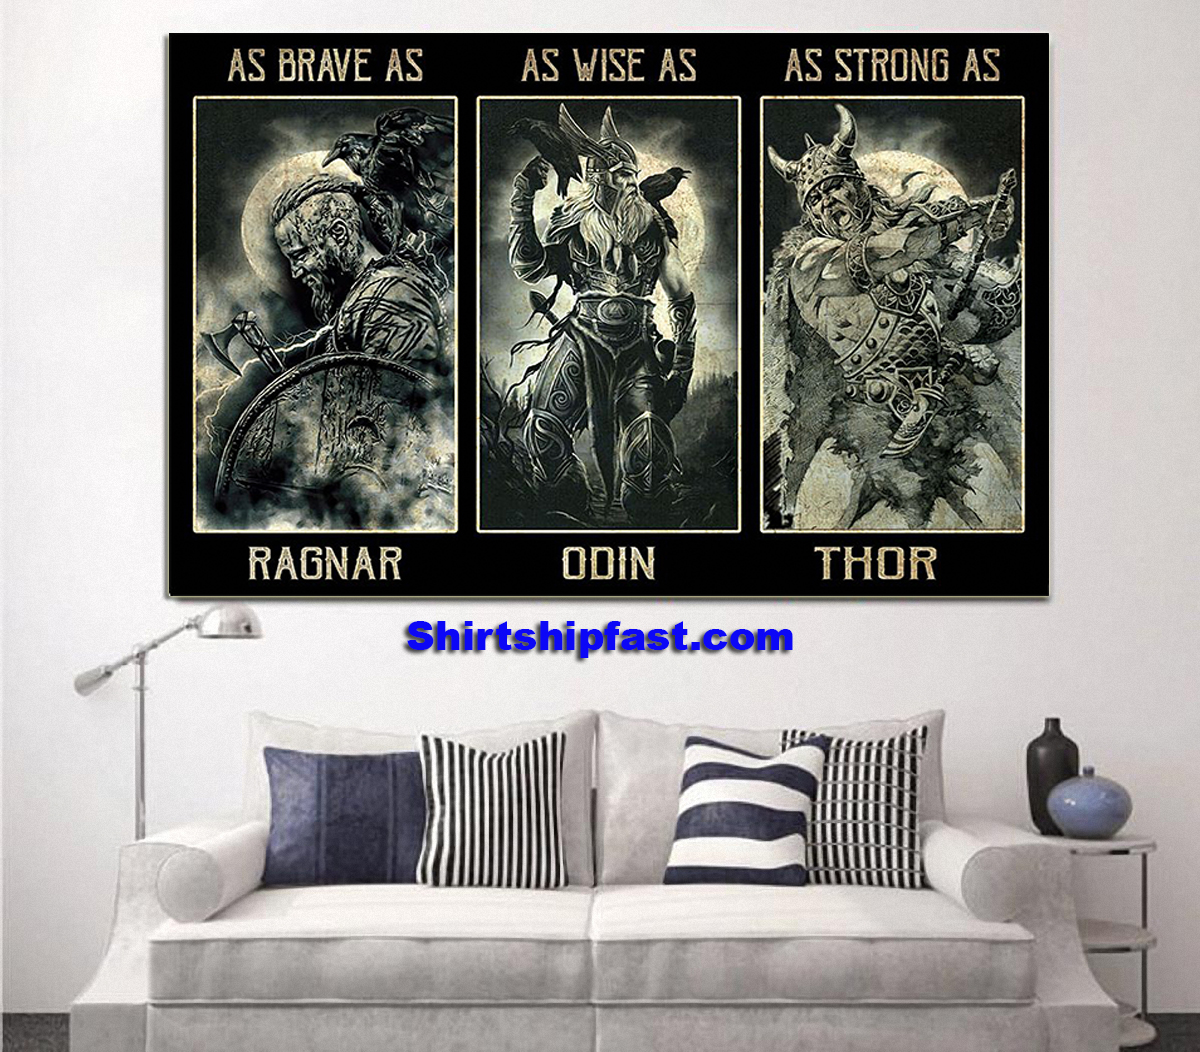 Poster As brave as Ragnar As wise as Odin As strong as Thor